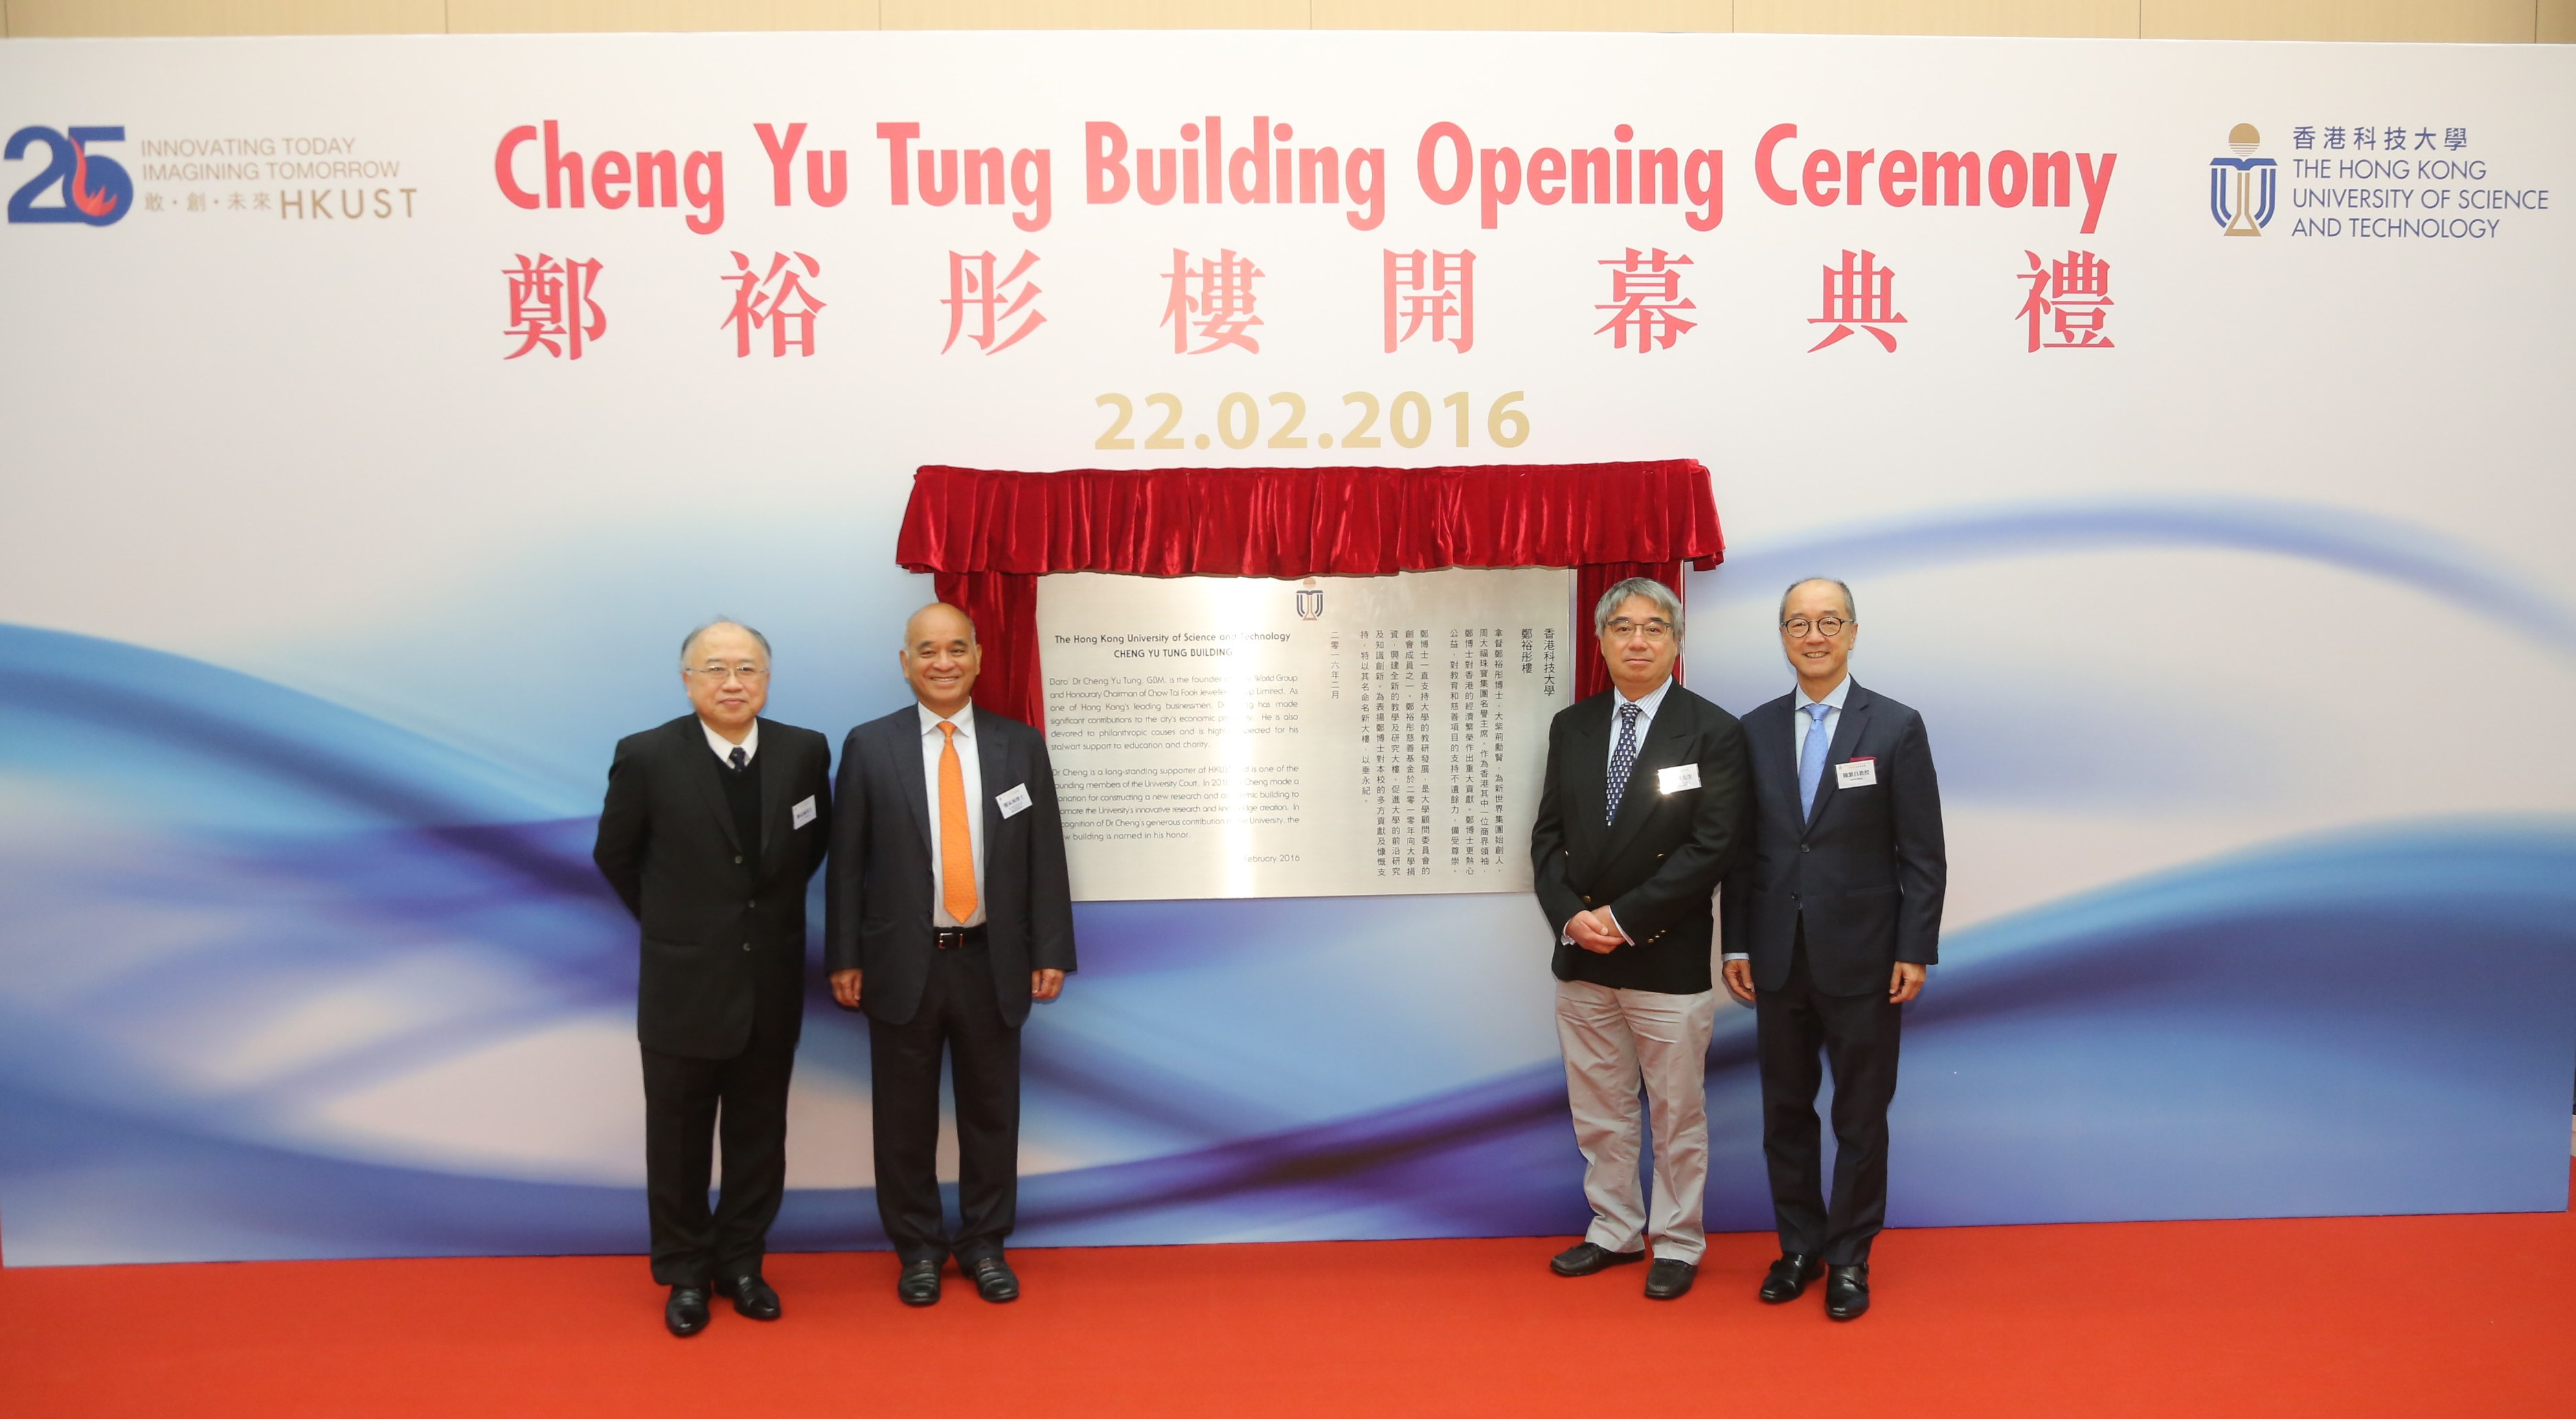 HKUST Holds Opening Ceremony for Cheng Yu Tung Building